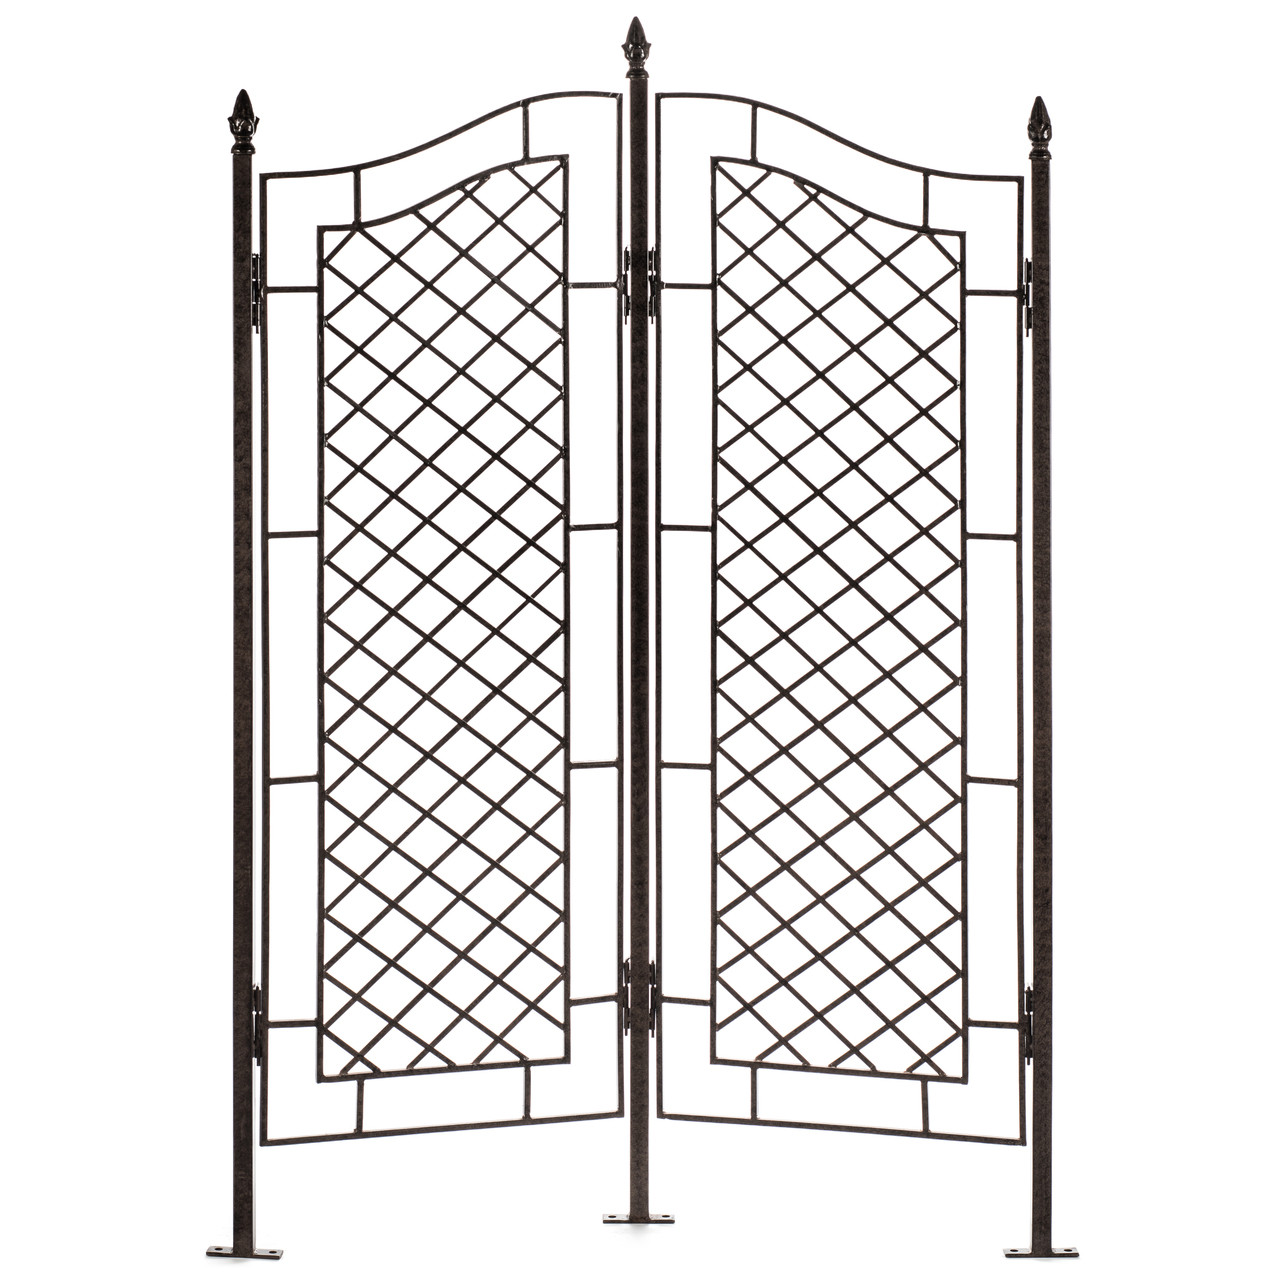 h potter two panel trellis wrought iron ivy garden screen - Garden Trellises